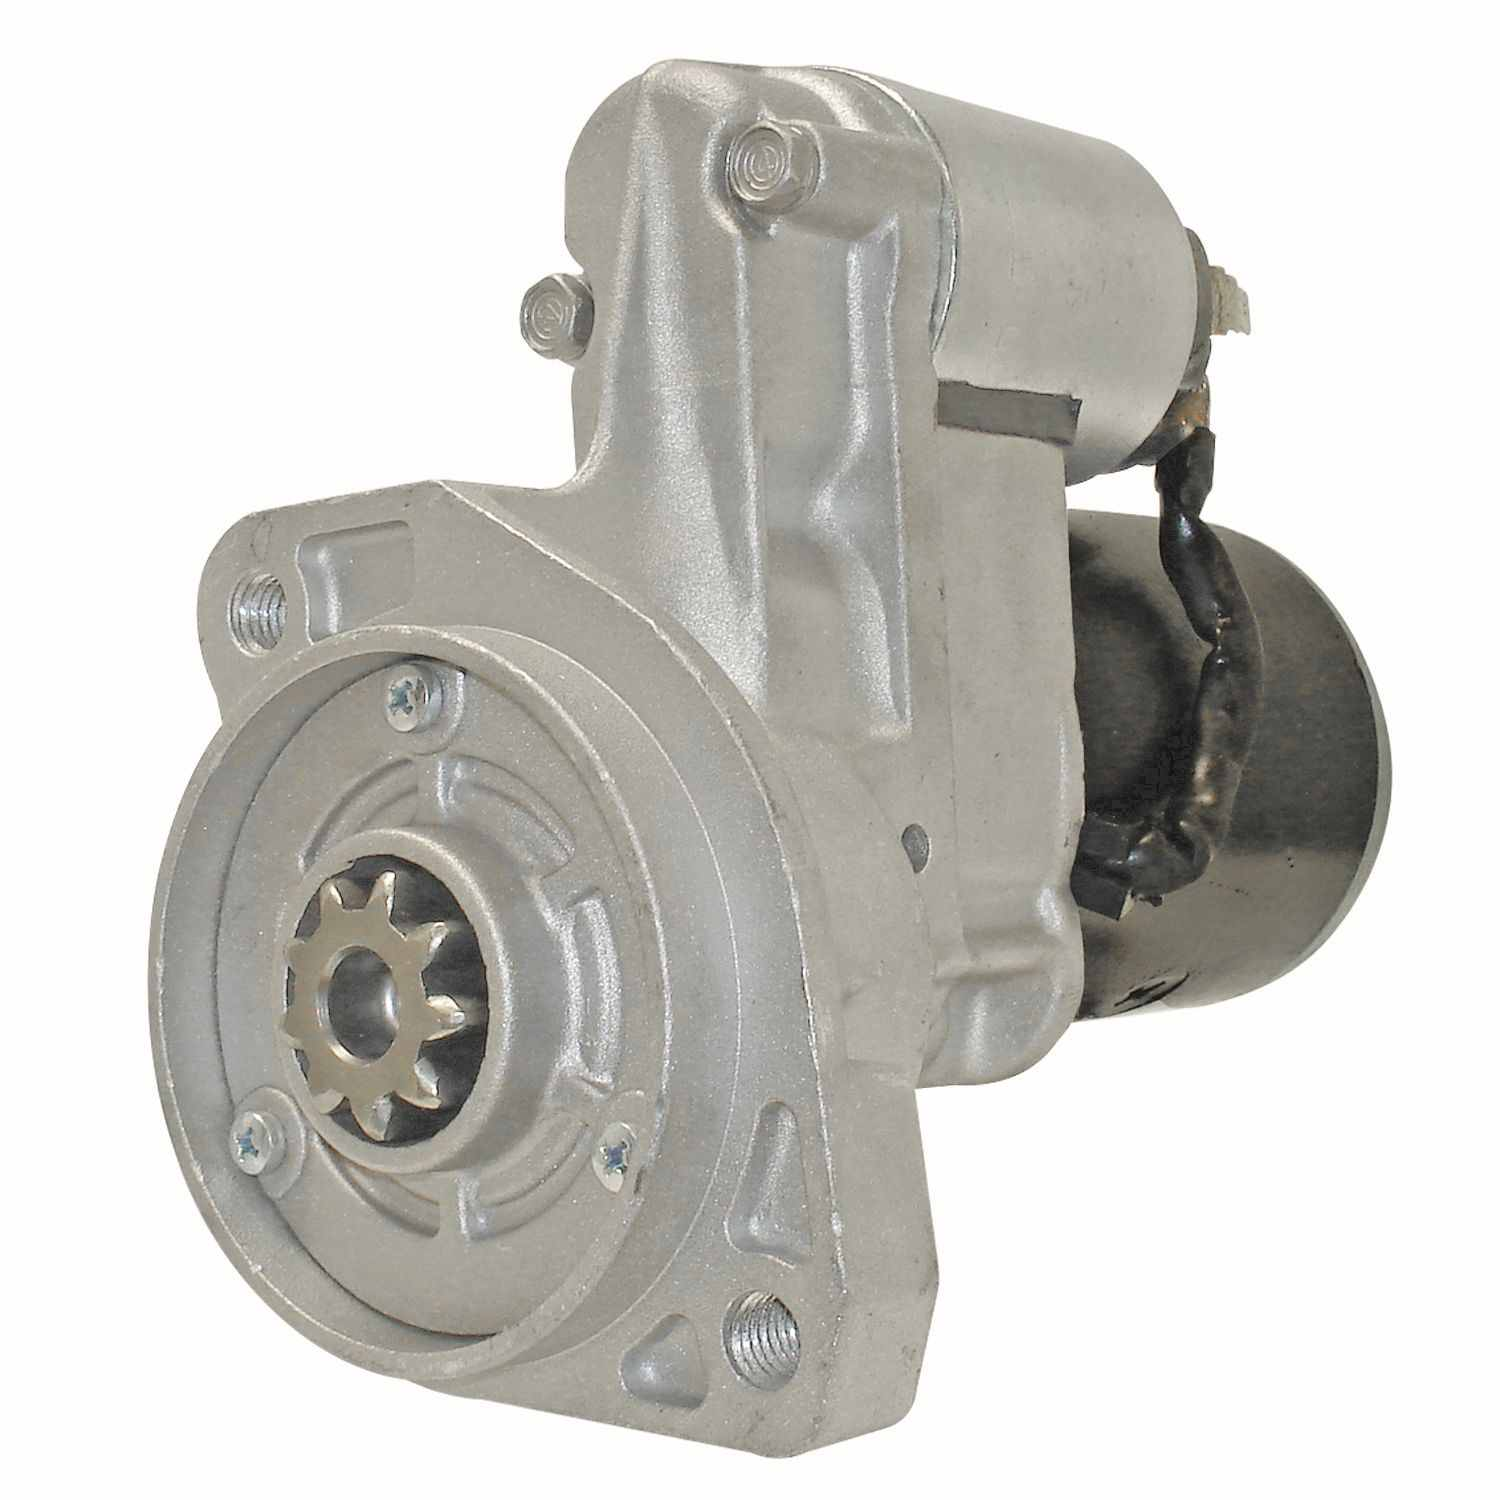 ACDELCO GOLD/PROFESSIONAL - Reman Starter Motor - DCC 336-1414